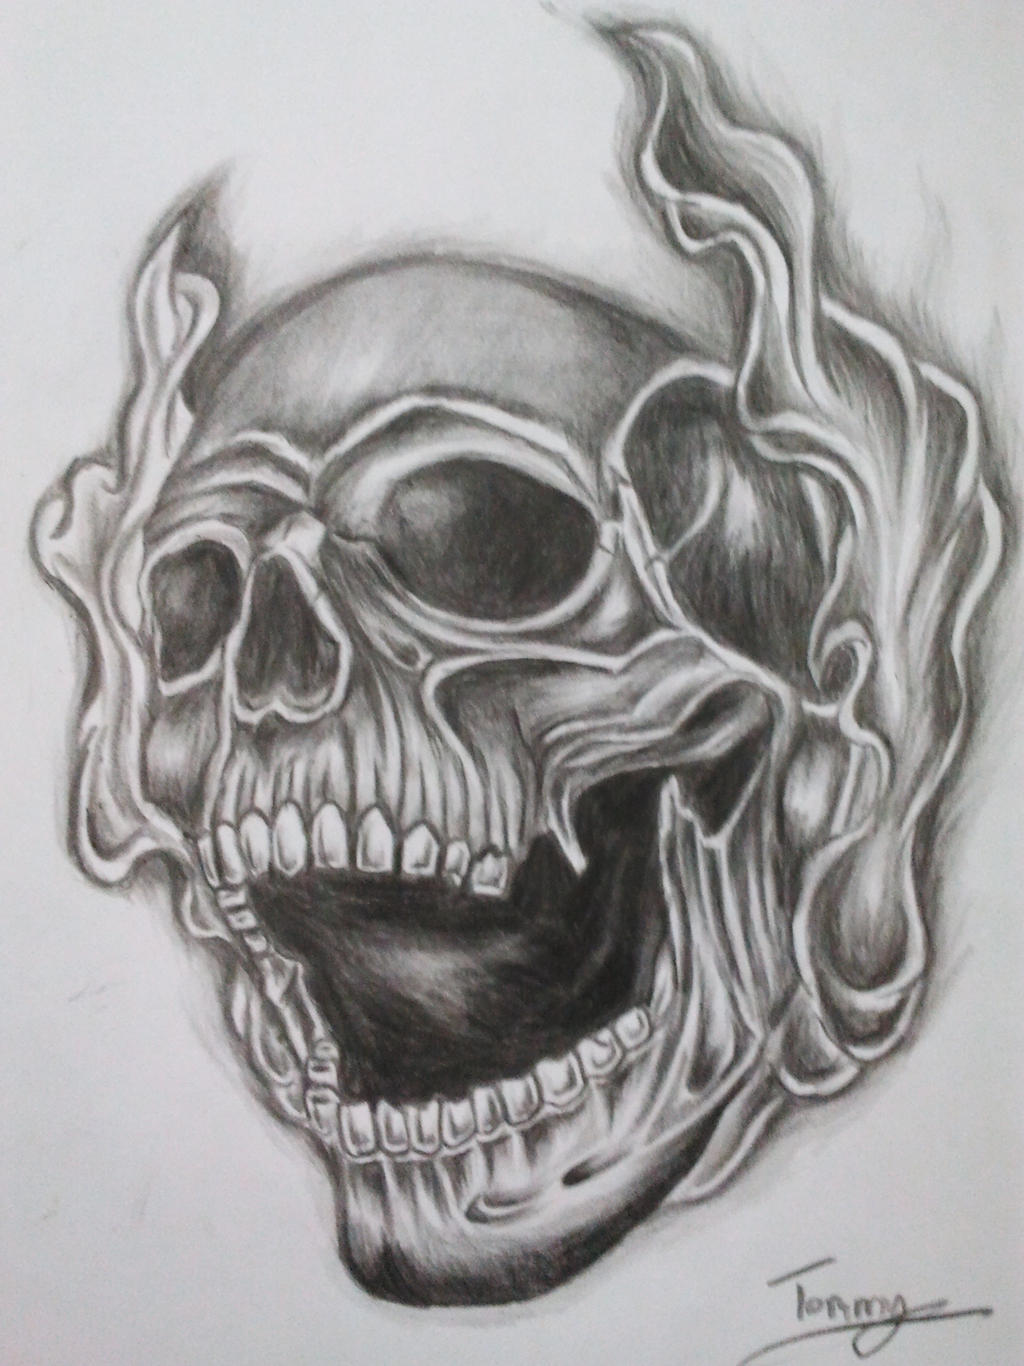 Skull Smoking Weed Drawing Smoke Skull Tattoo1024 x 1365